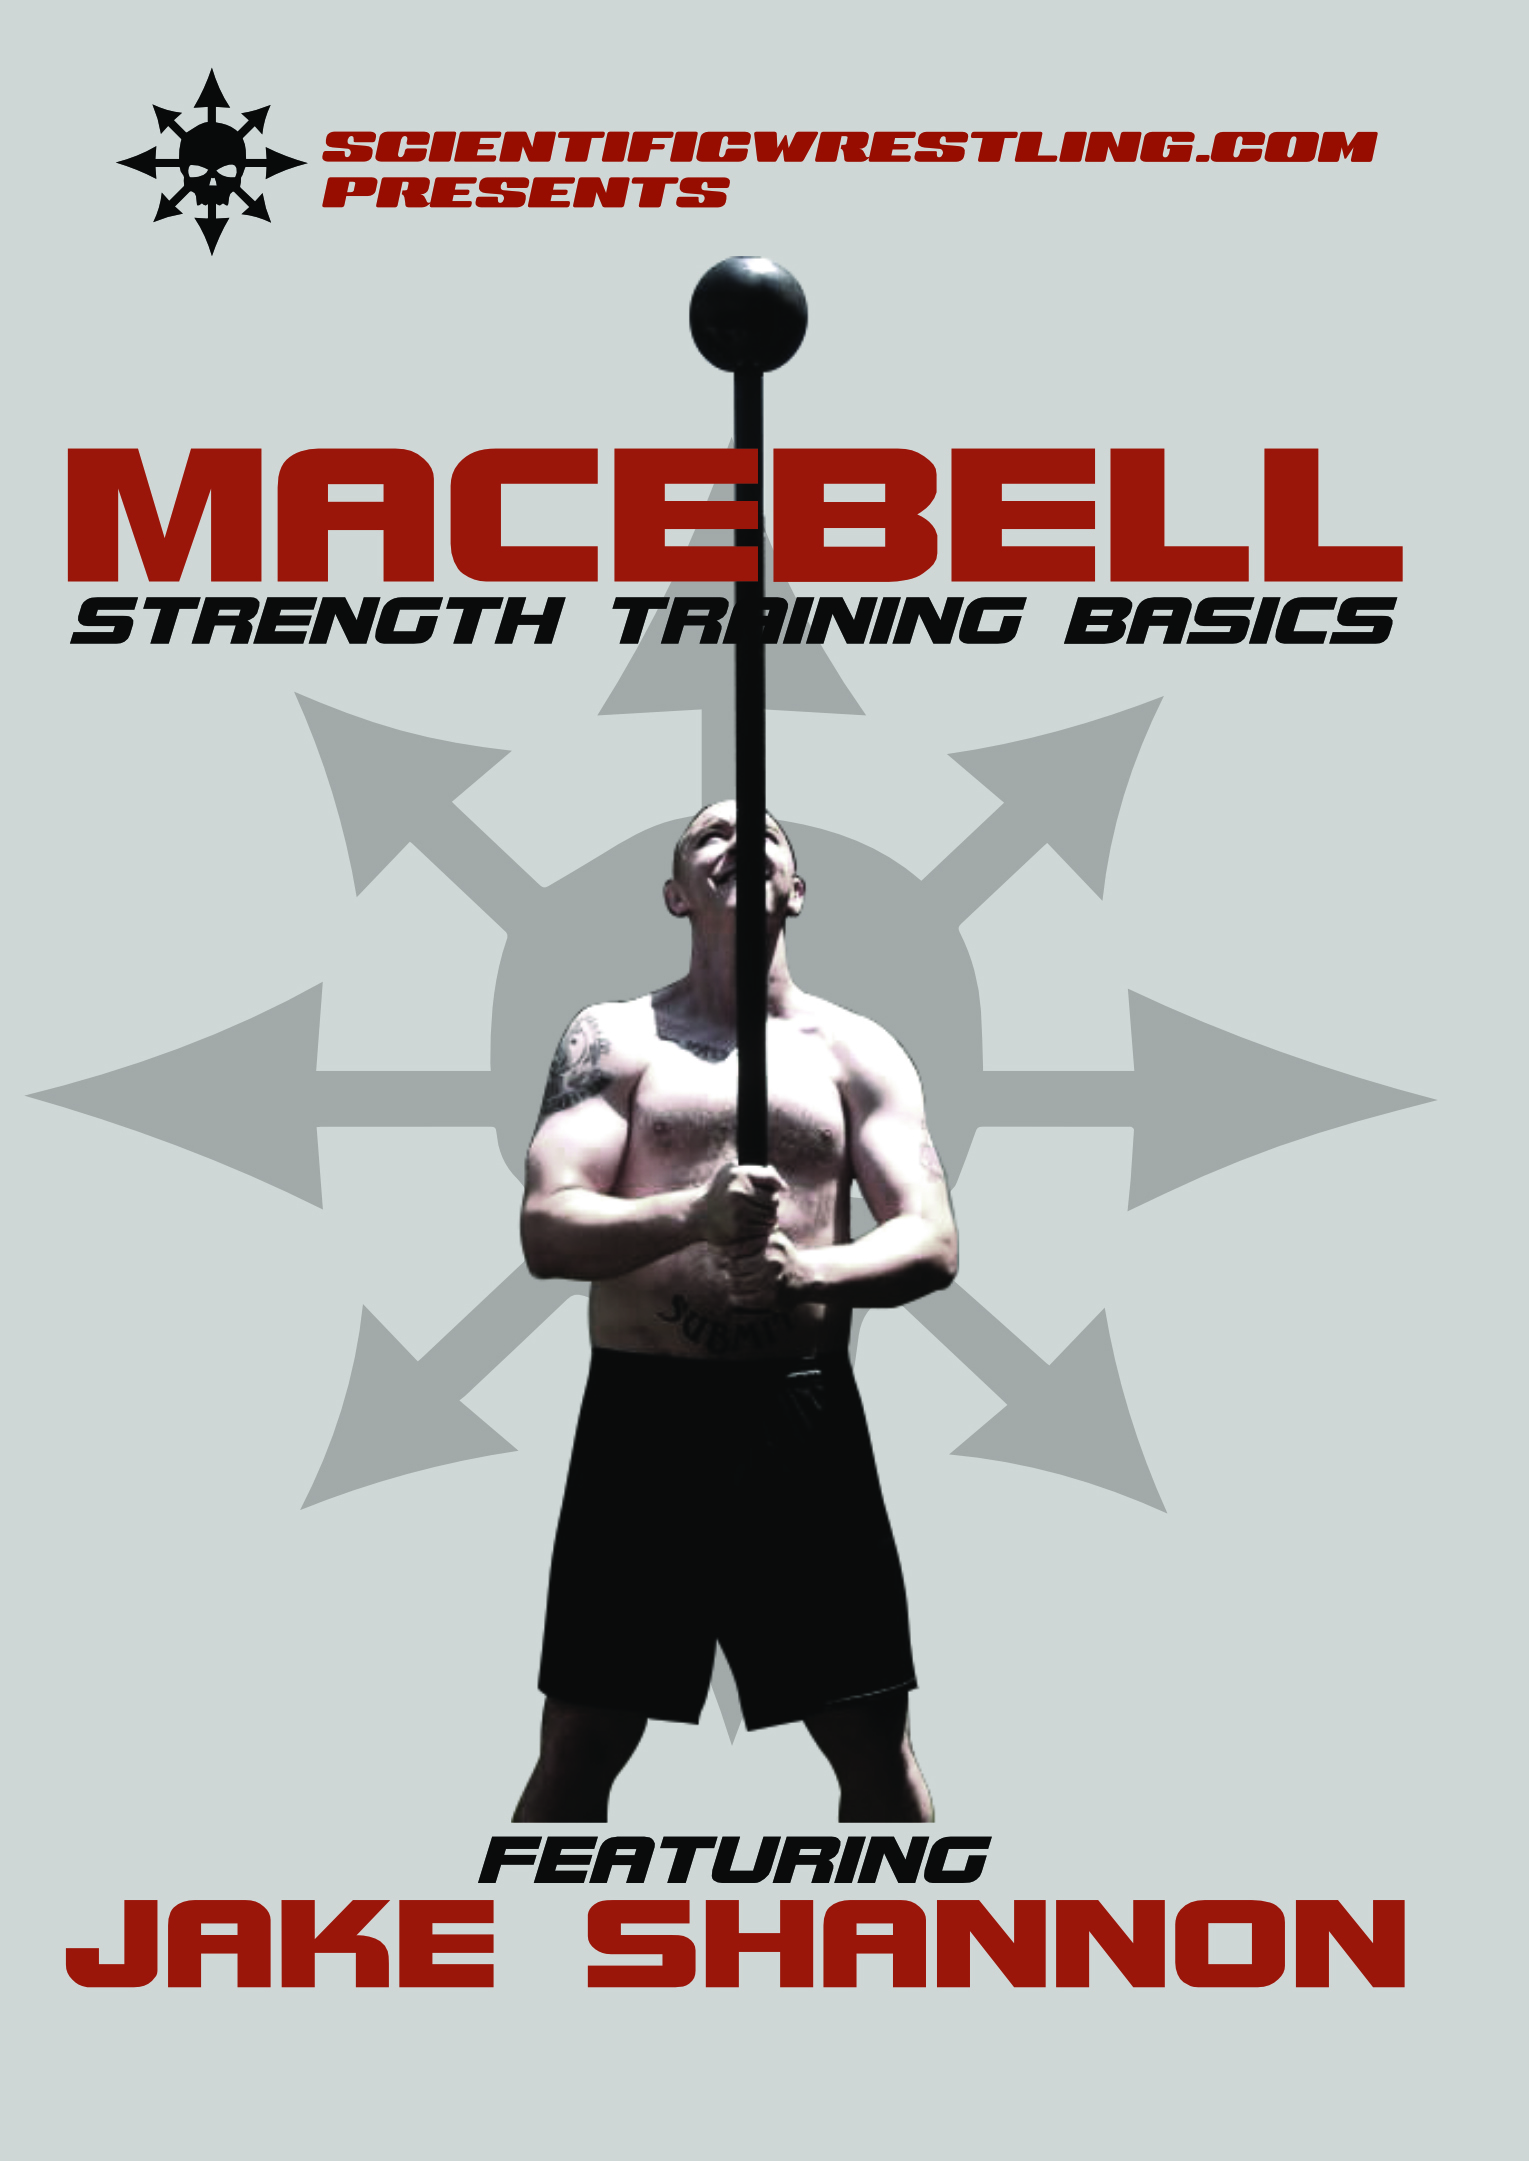 Jake Shannon macebell strength training basics